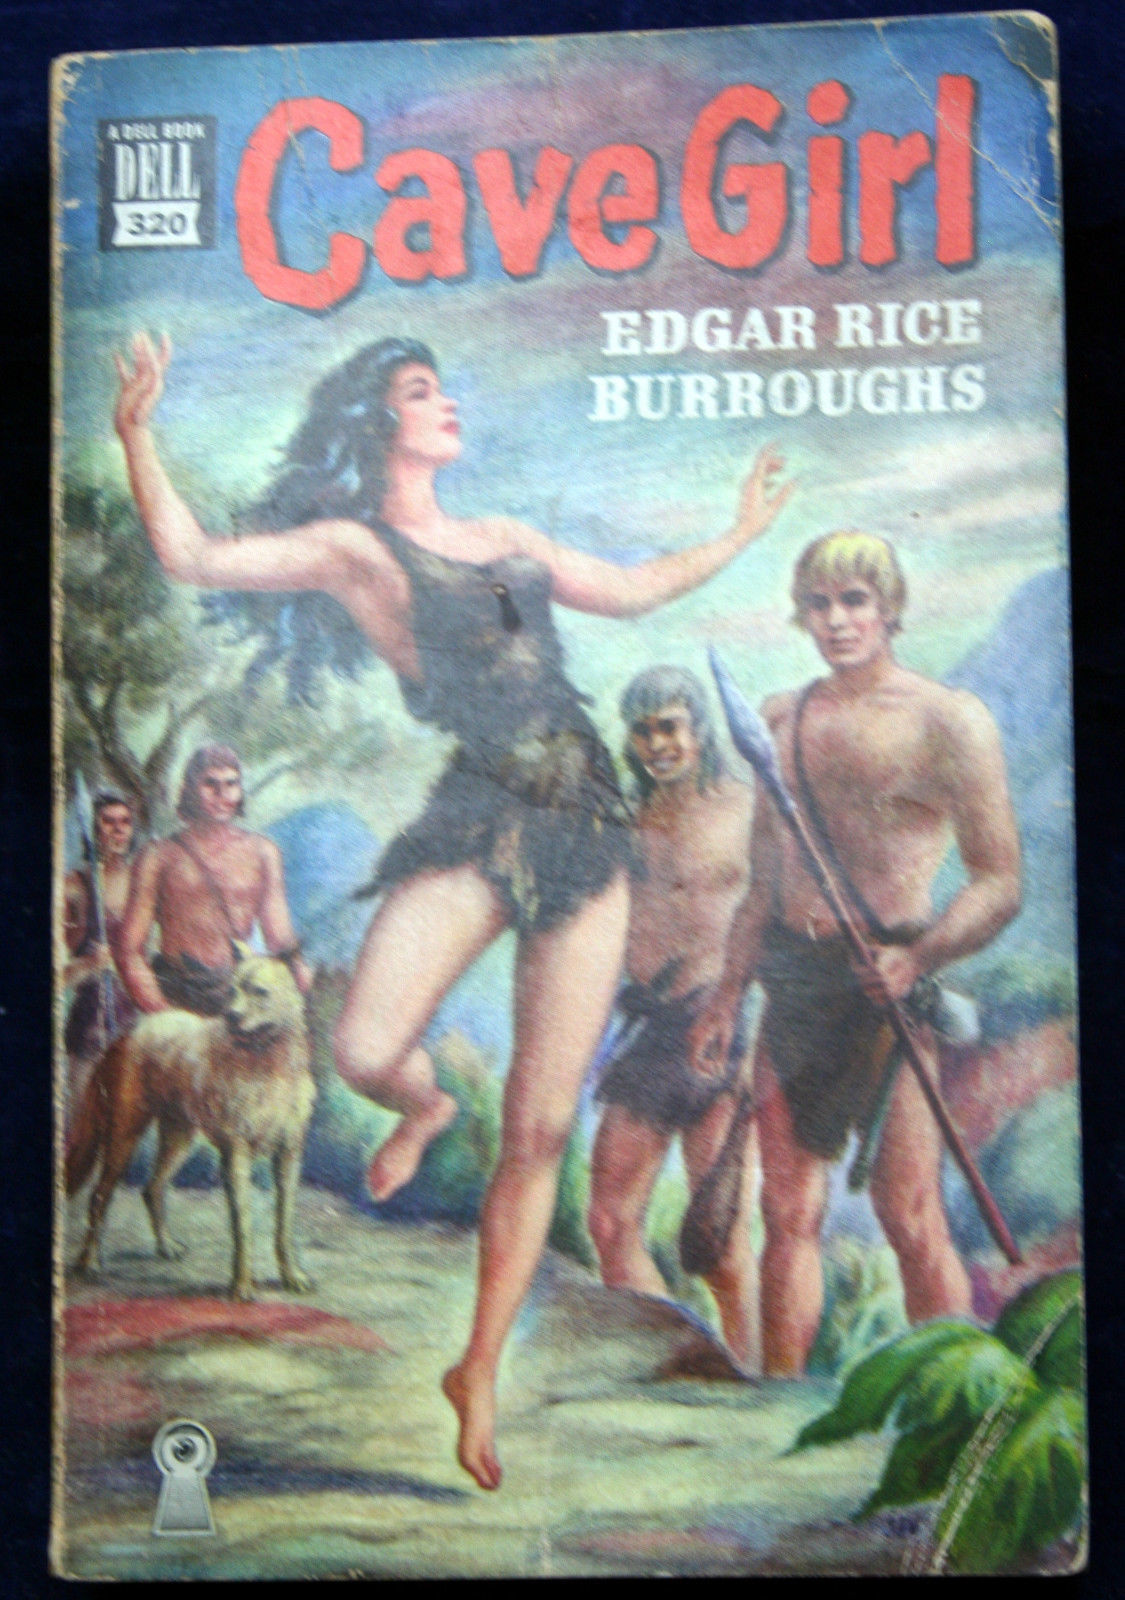 Primary image for Dell Mapback #320 Edgar Rice Burroughs CAVE GIRL Blood & Violence Rule Wild IS.